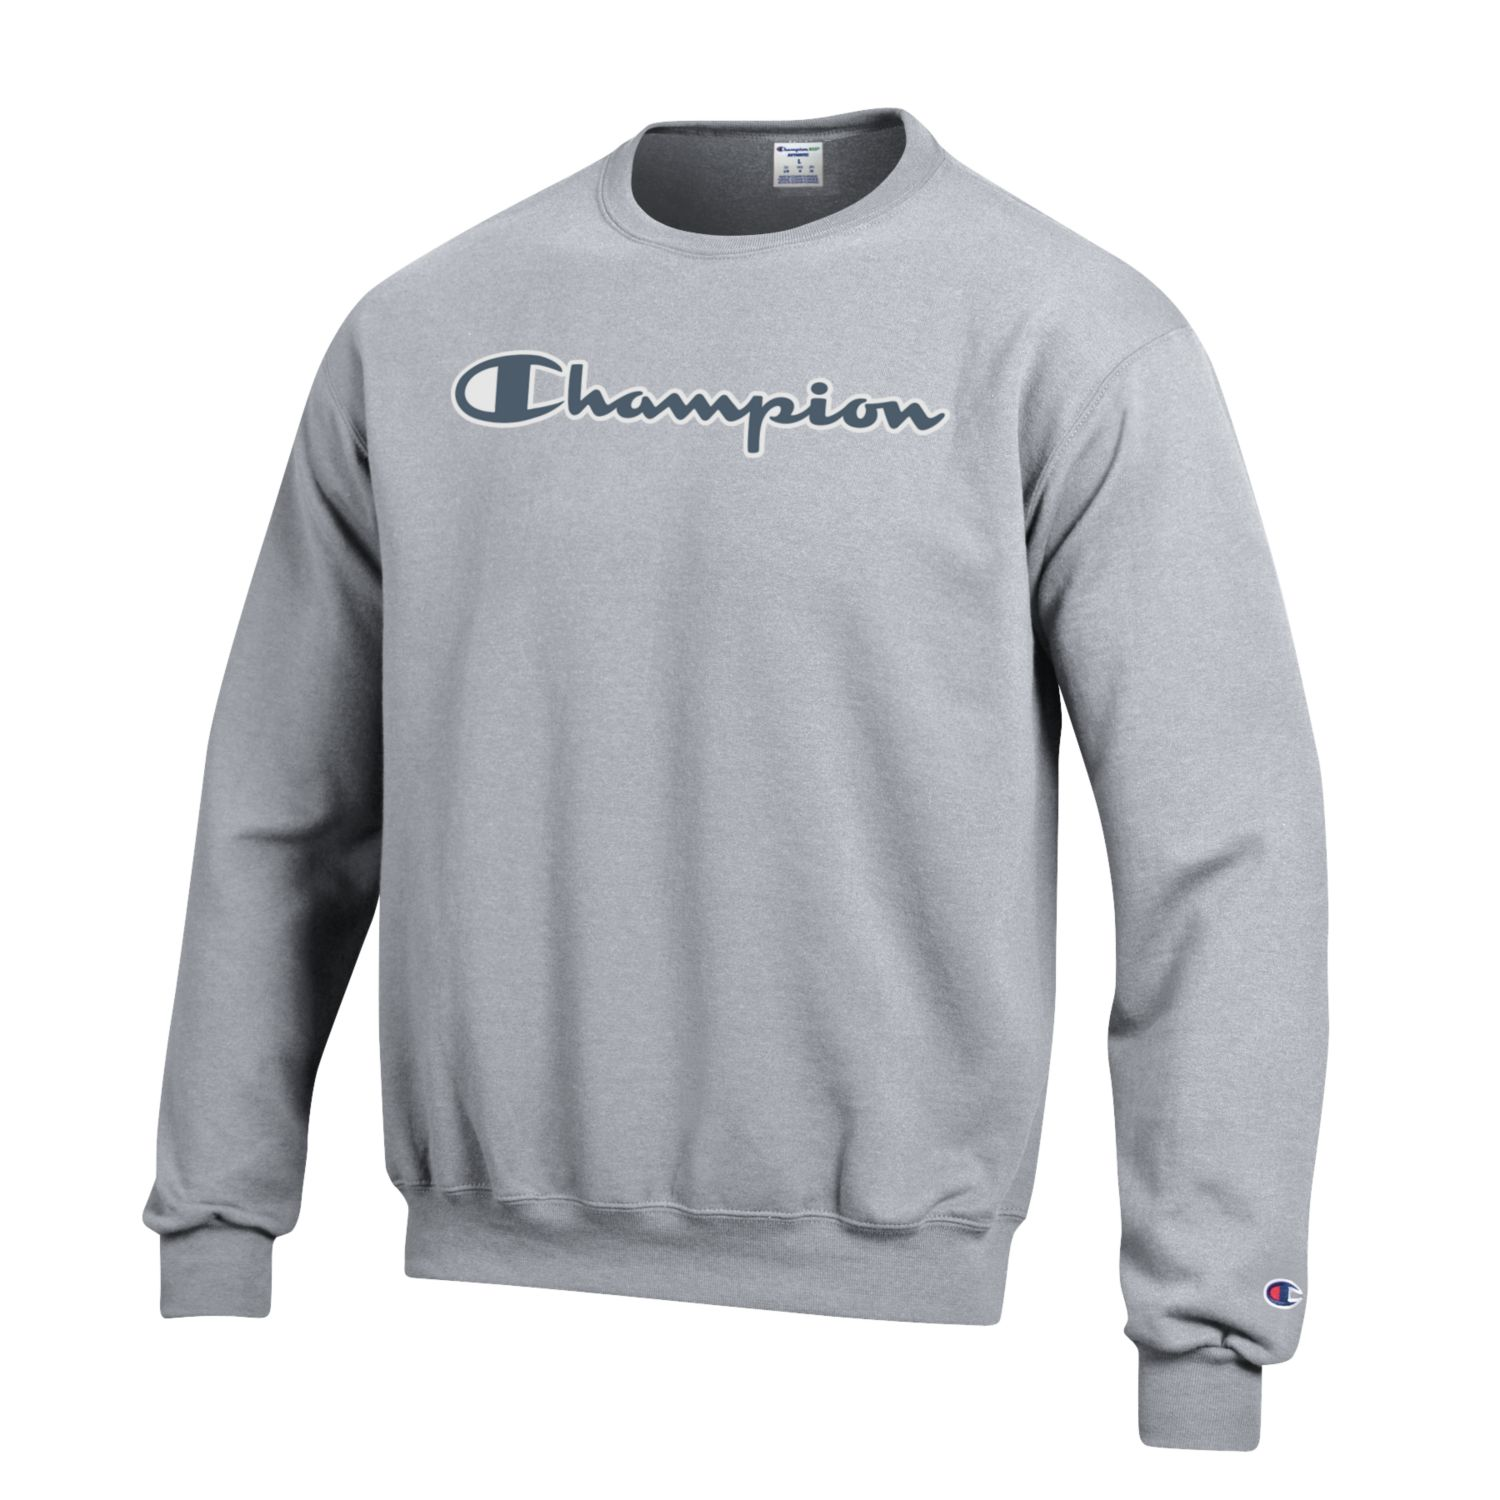 867ca476 Champion: Eco Powerblend Crew - Heather Grey